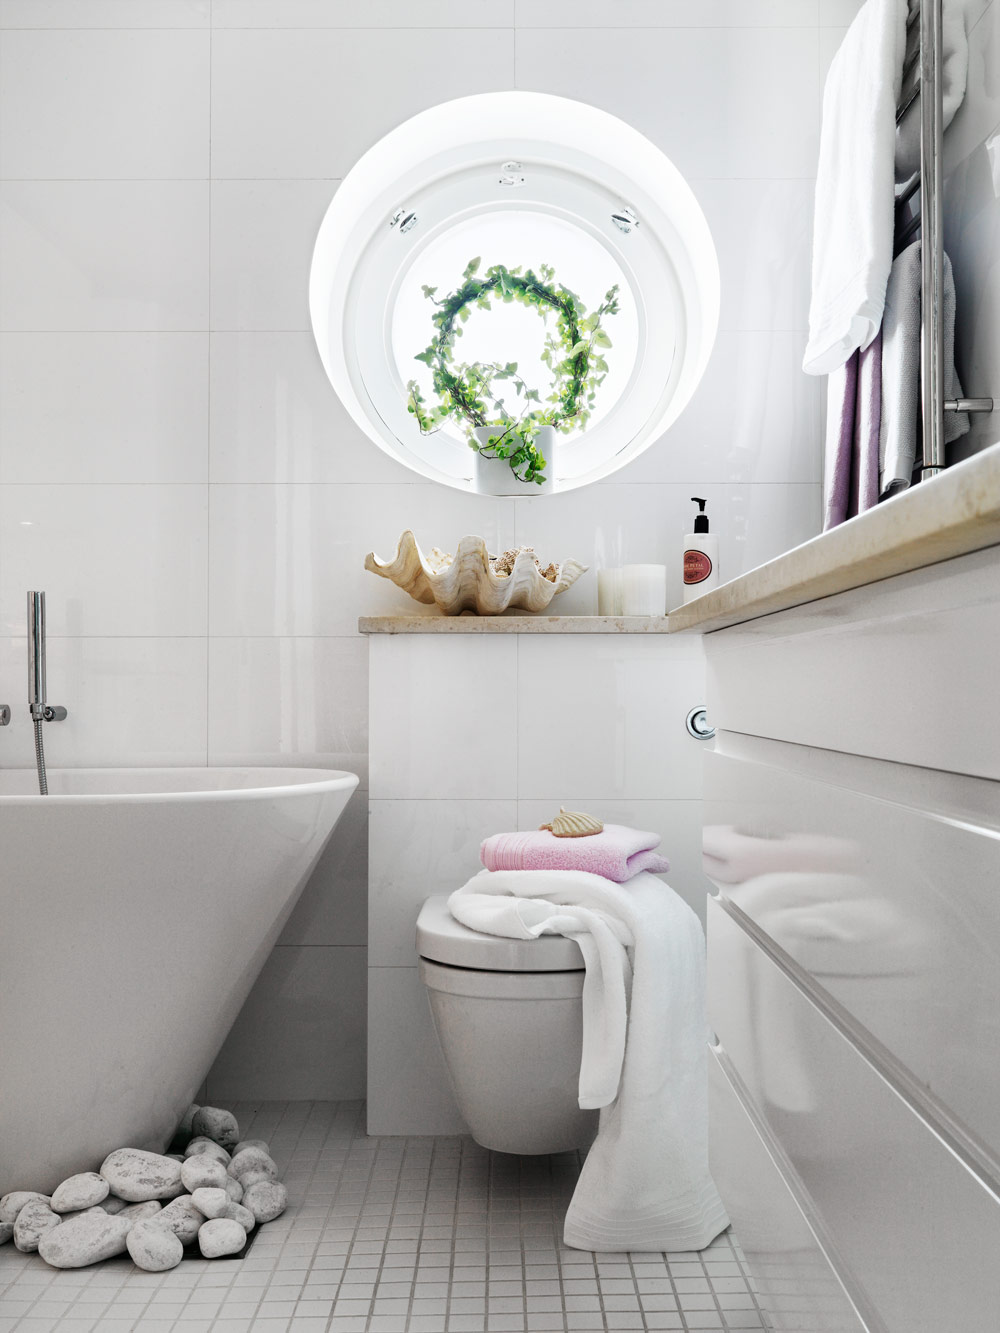 Stylish small bathroom with an unusual decor digsdigs for Toilet and bath design